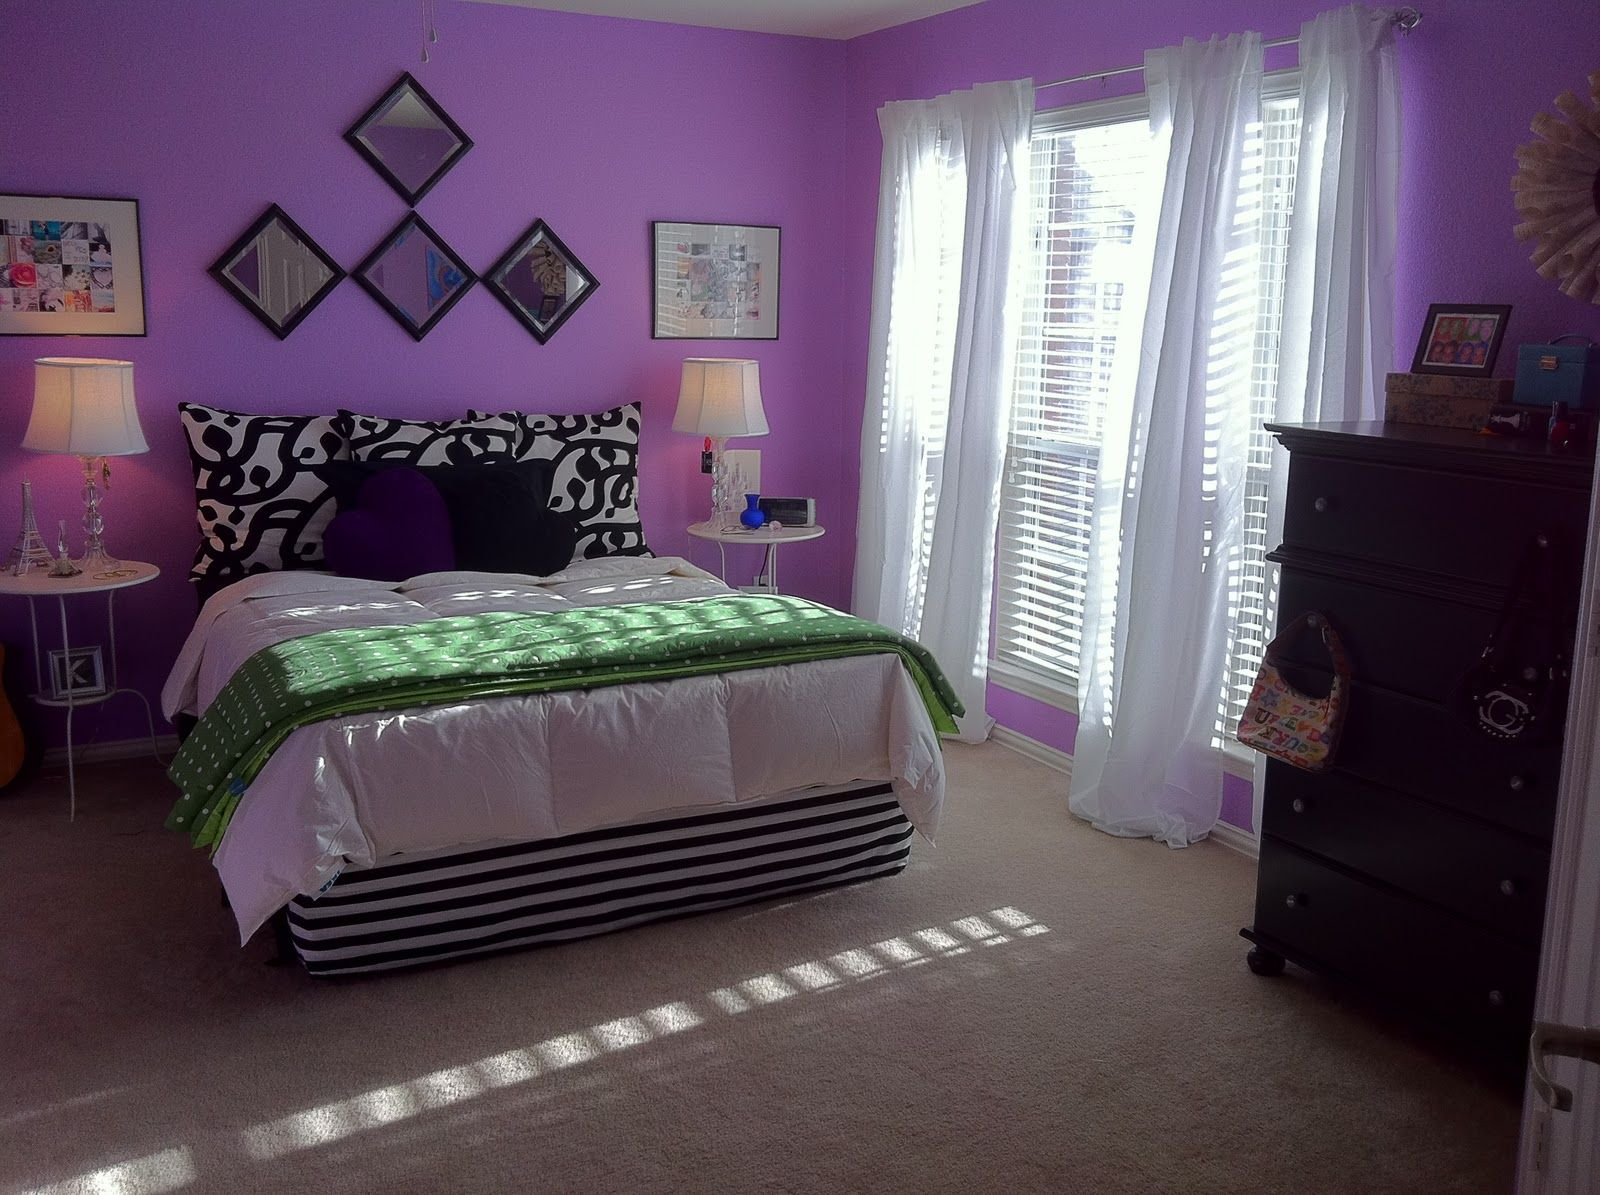 Bedroom Decor Purple purple teen bedrooms | room ideas :) | pinterest | purple teen